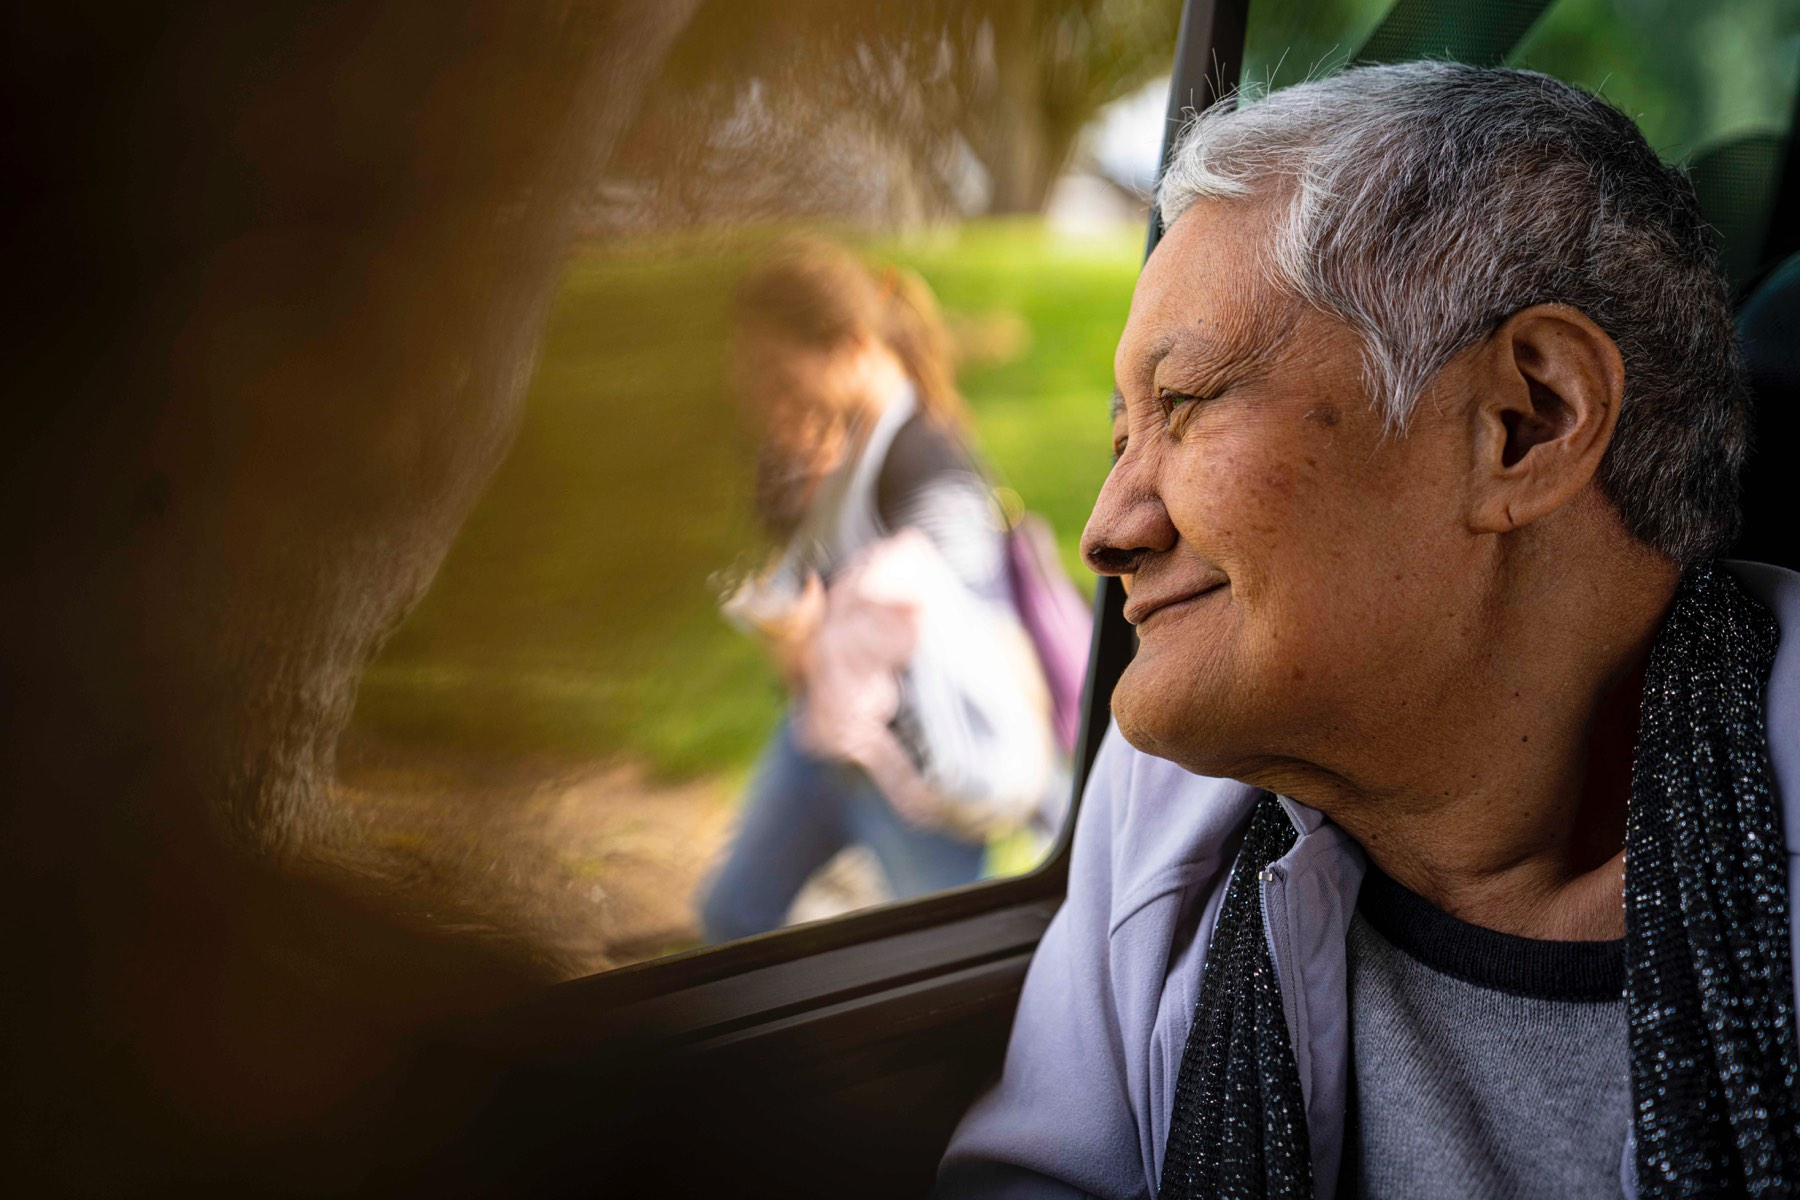 Oceania resident smiling outside a car window on a van trip